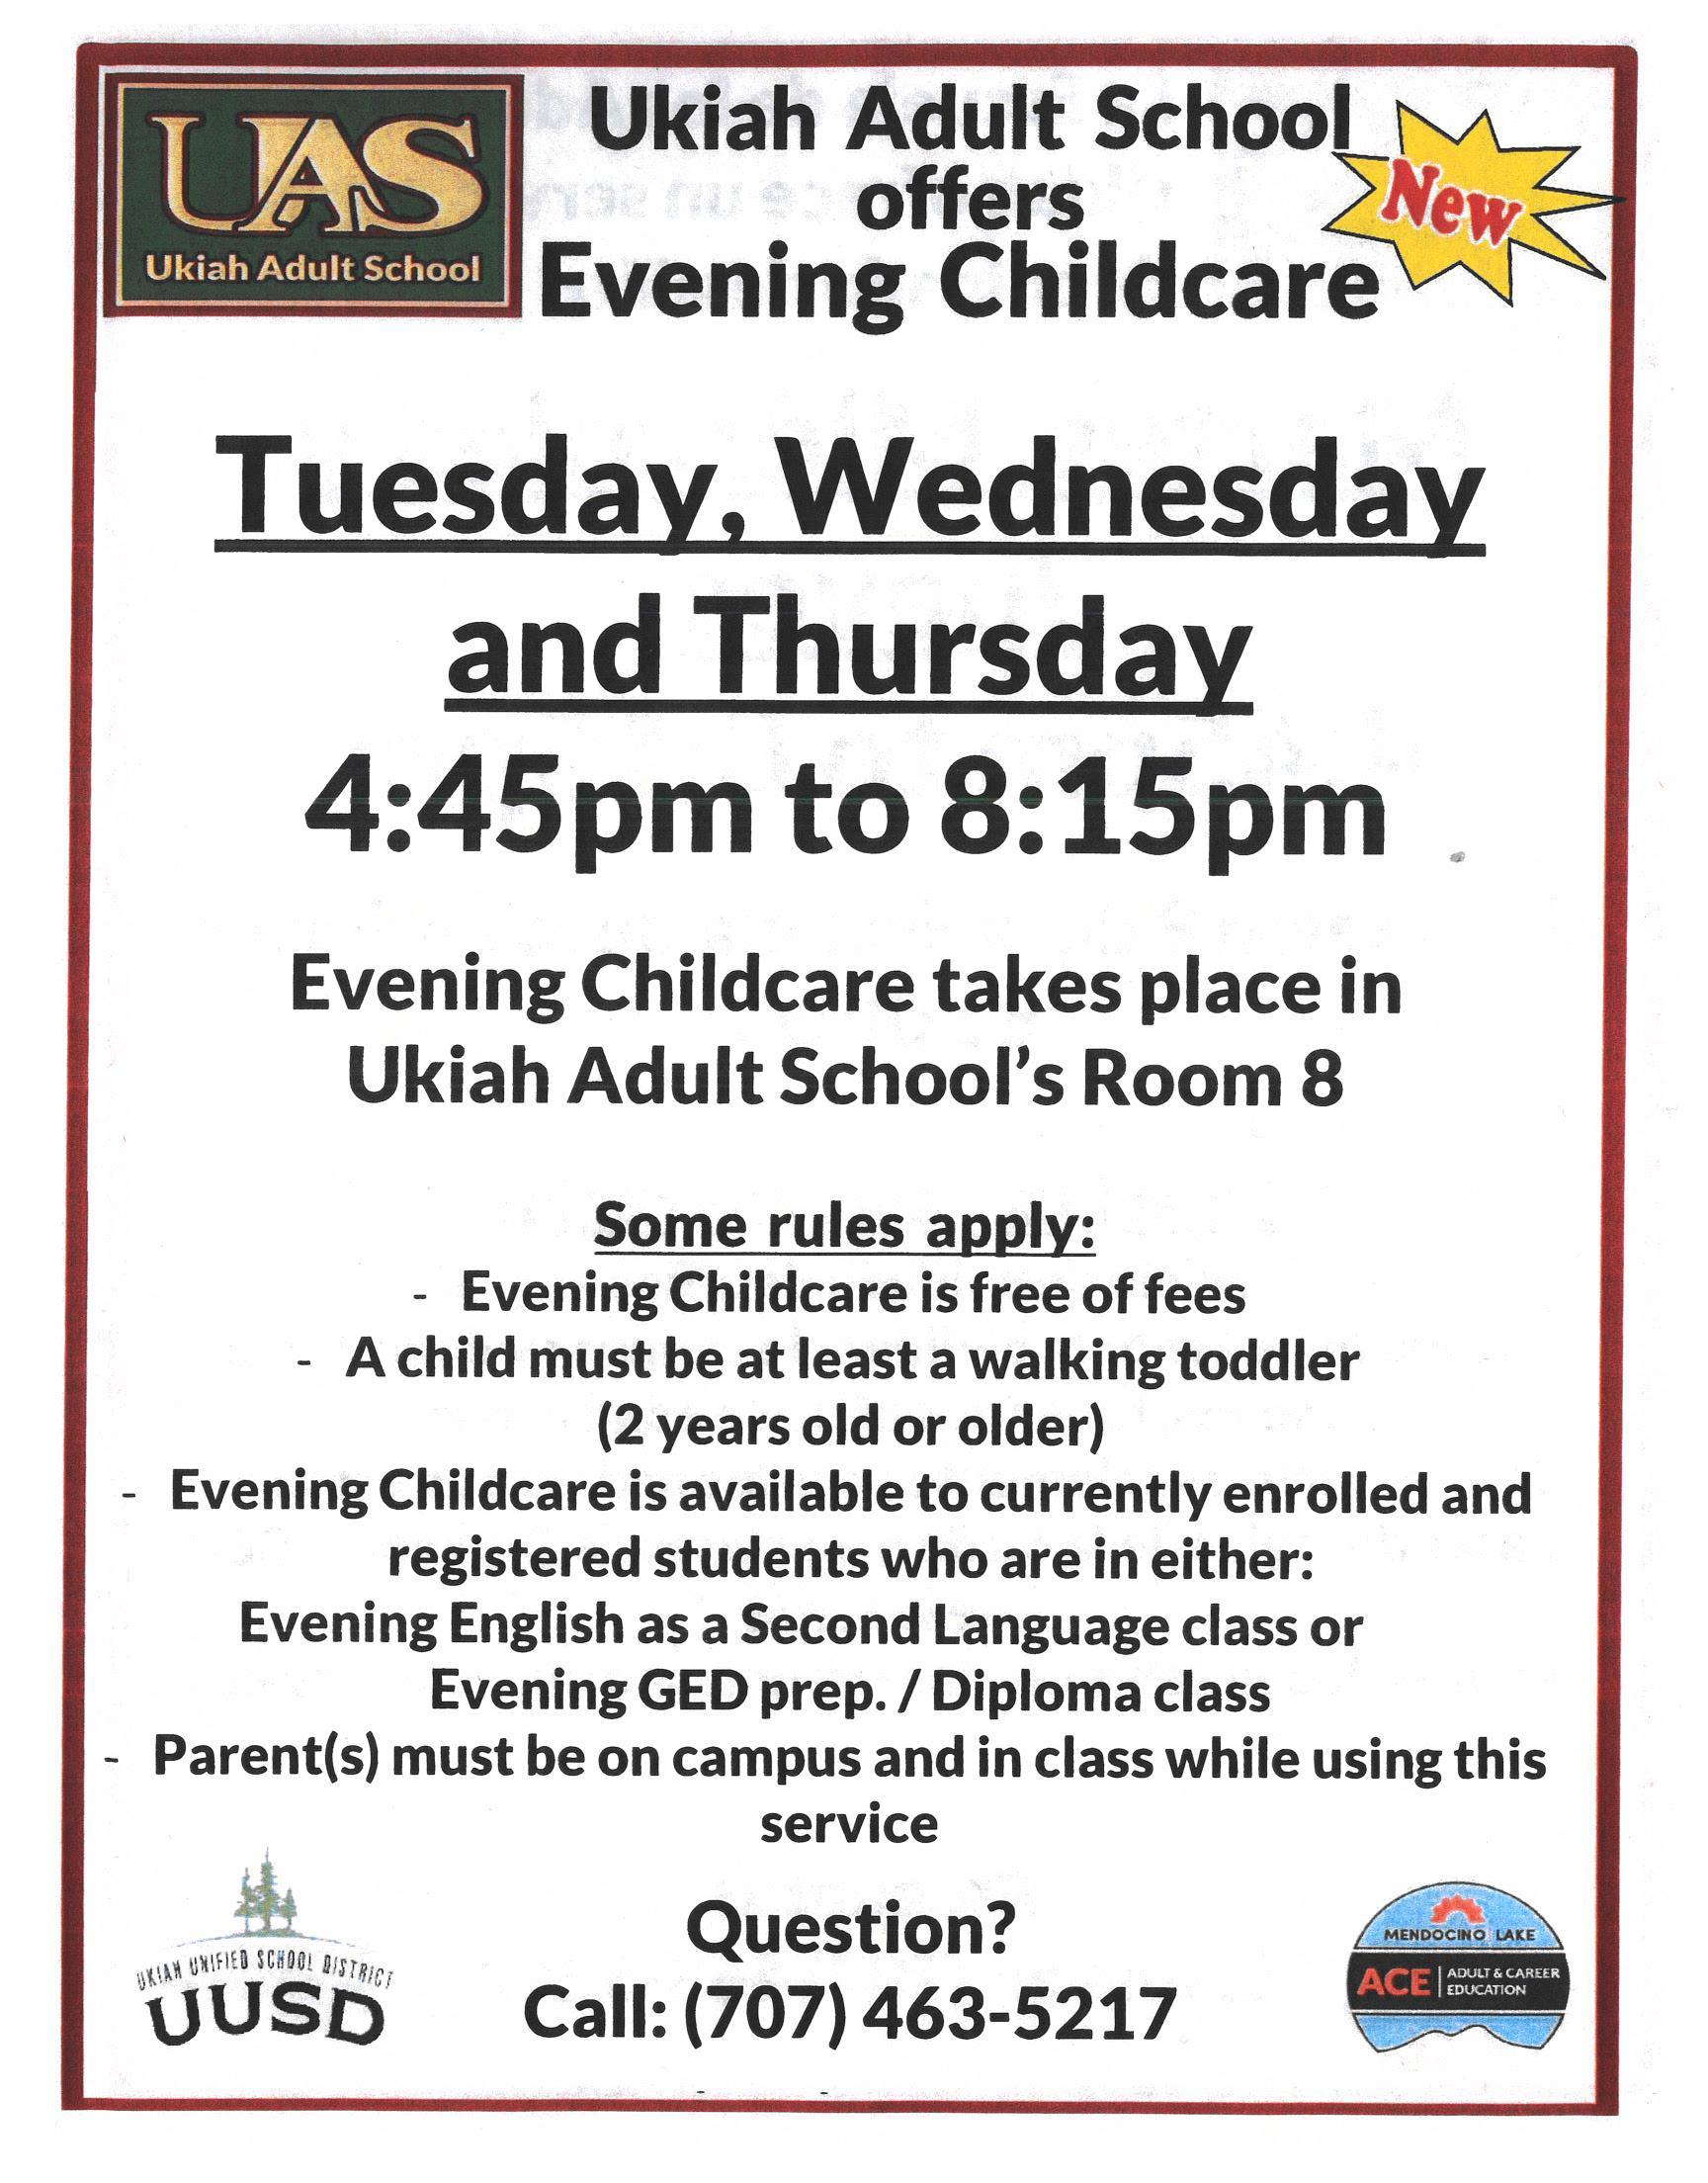 Ukiah Adult School offers free Evening Childcare, Tuesday, Wednesday and Thursday from 4:45pm to 8:15pm poster